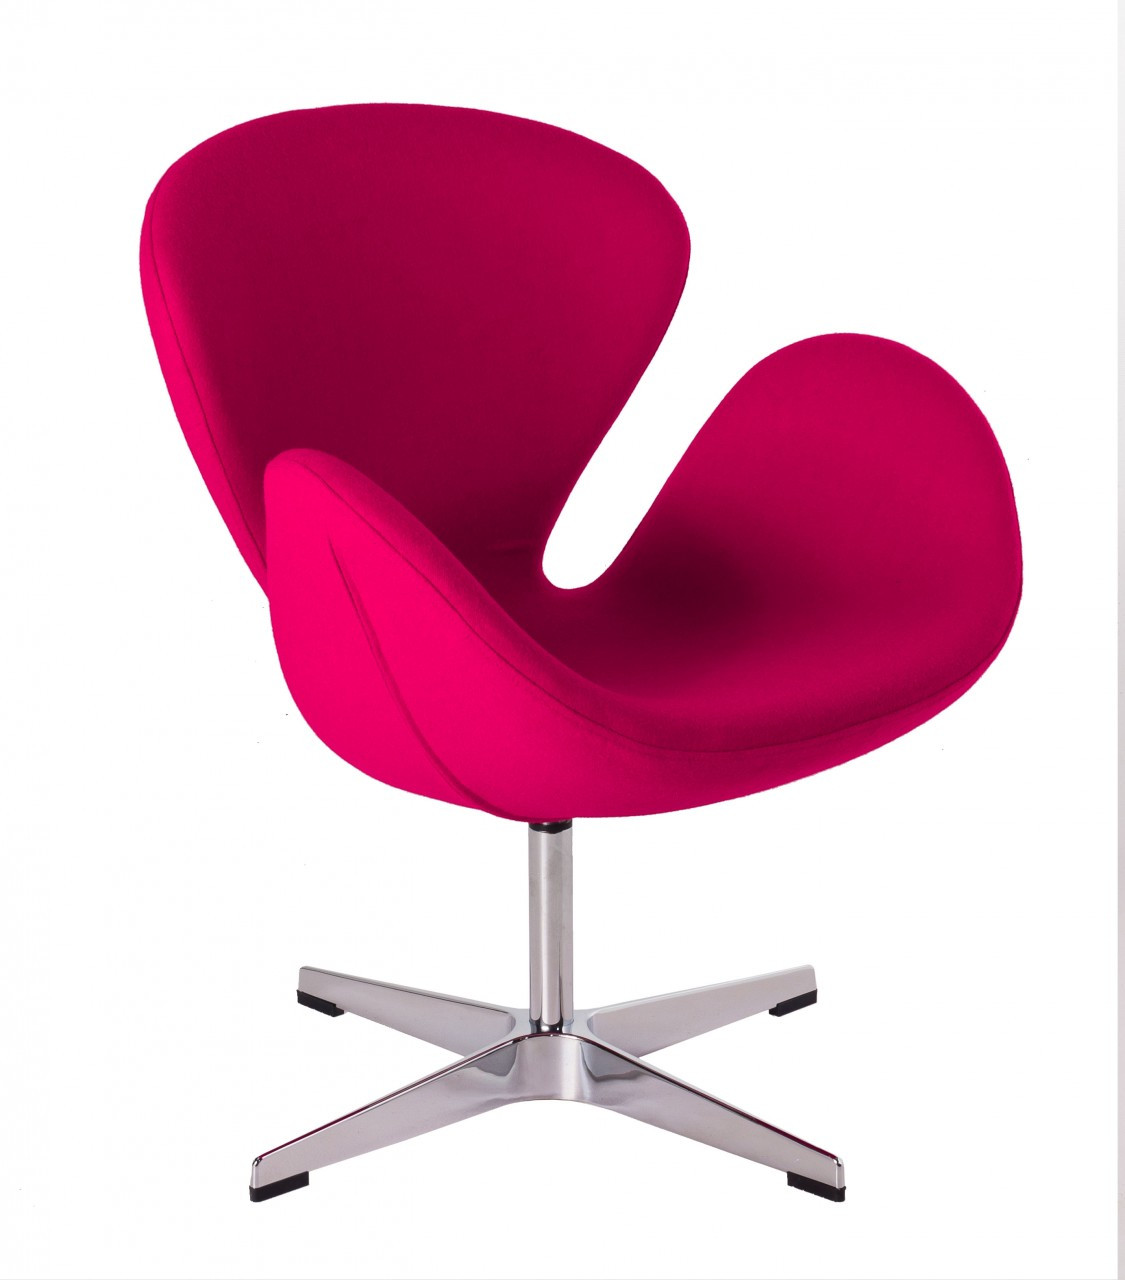 Replica Swan Chair Pink Arne Jacobsen Replica Arne